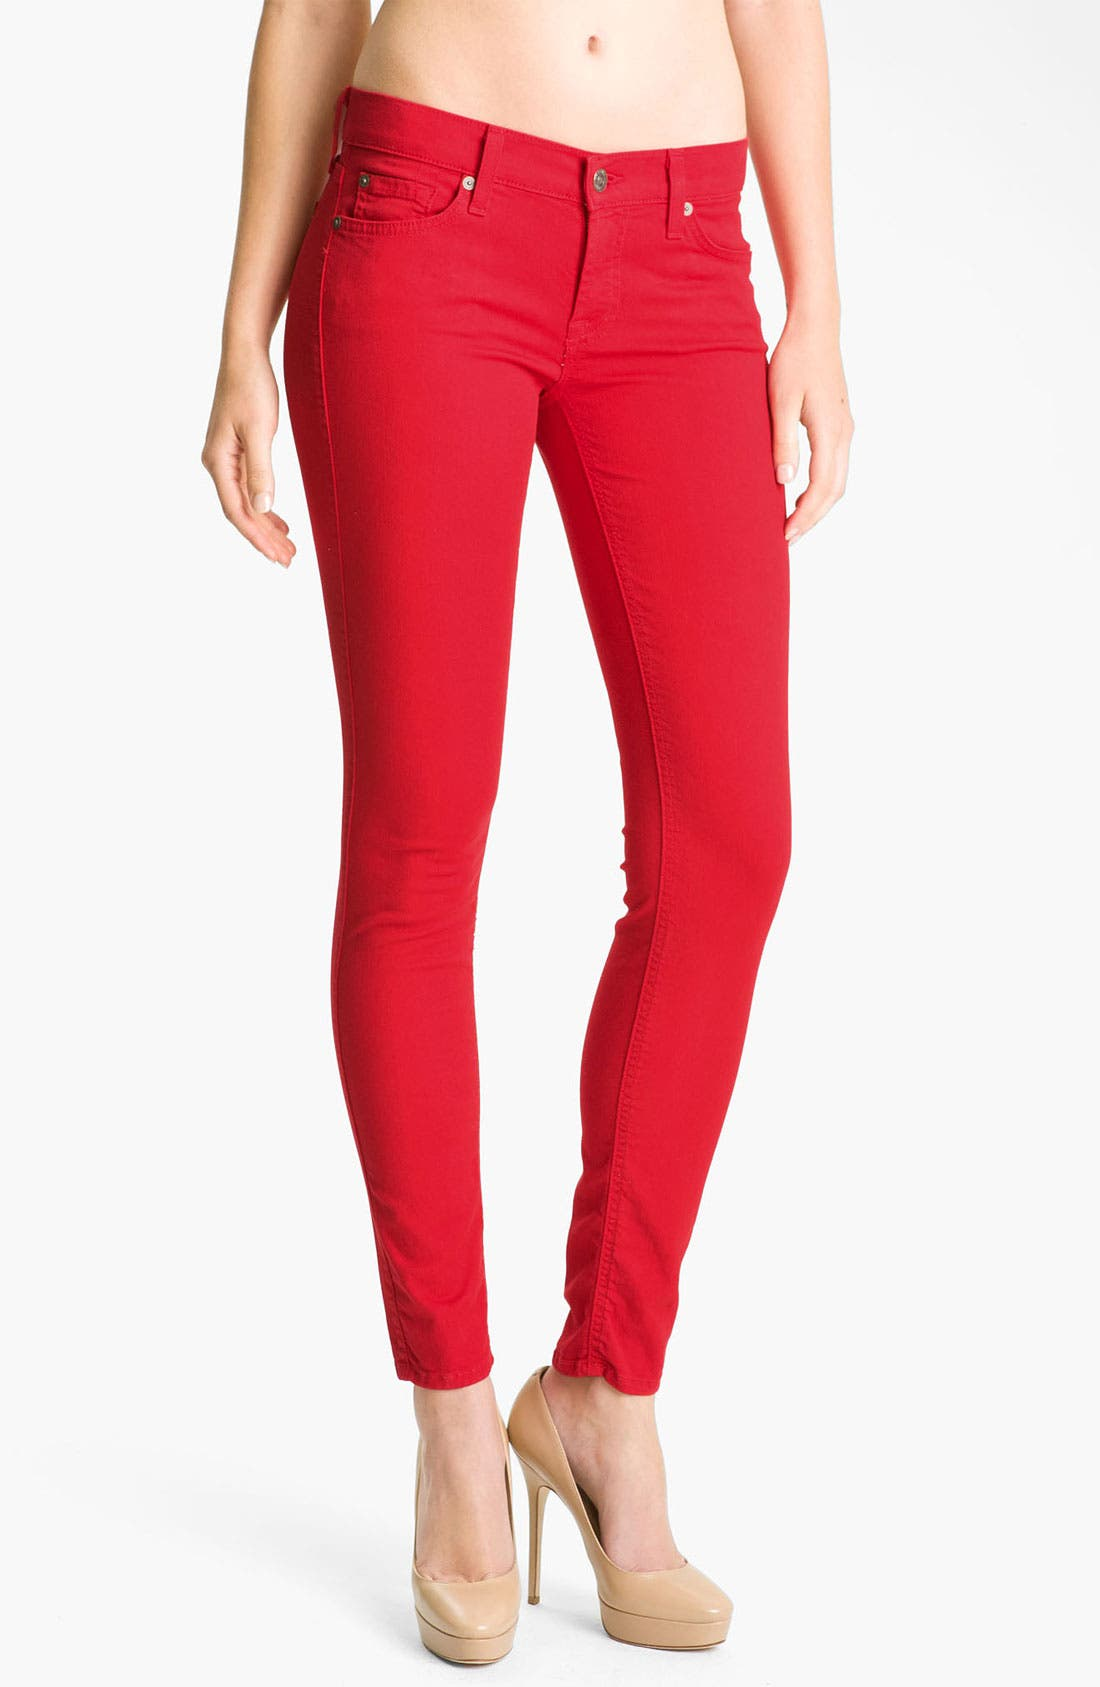 Alternate Image 1 Selected - 7 For All Mankind® 'The Skinny' Overdyed Jeans (Red Apple)